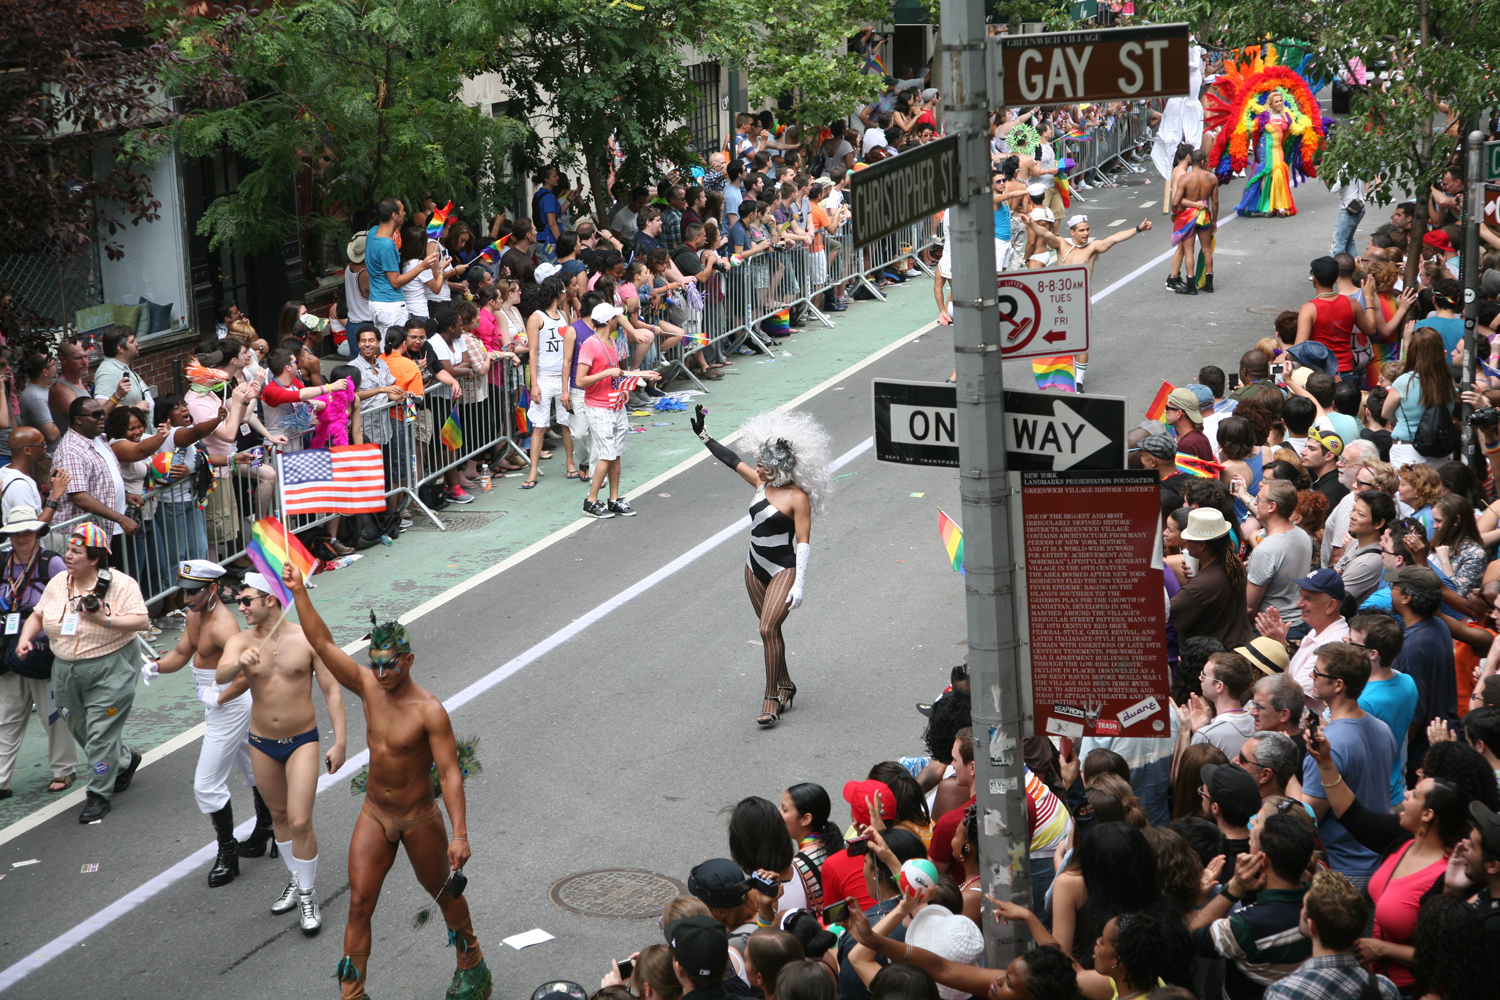 Festivities continued at the corner of Christopher and Gay Street as the parade reached the West Village, June 26, 2011.